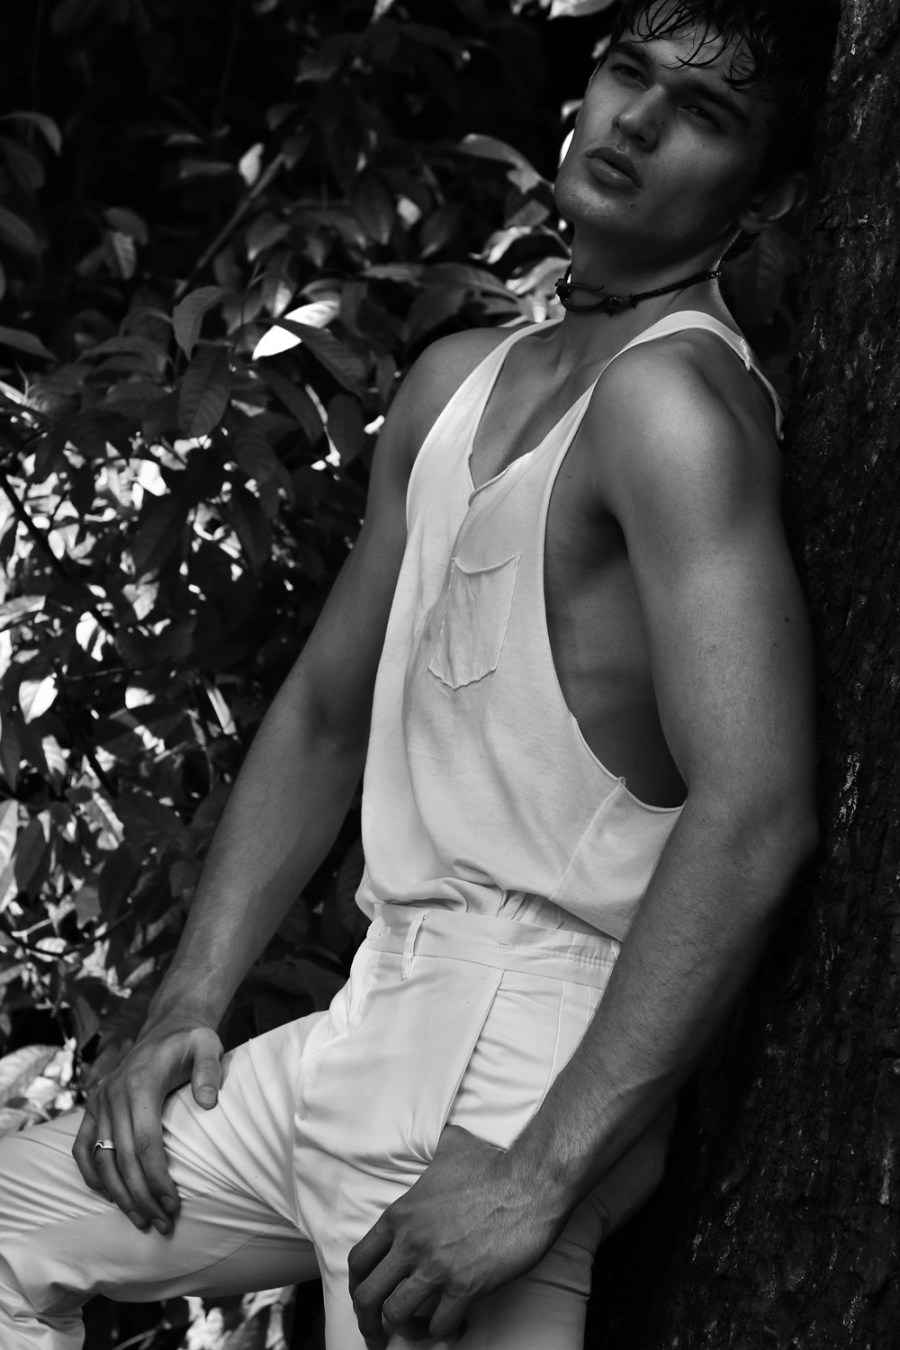 Check on this: a Brazilian new face 22yo from São Paolo signed by Way Models now working in Singapore signed by Ava Management and he's melting every lens when he stands out in front of it, modeling in black and white captured by Daniel Benjamin.